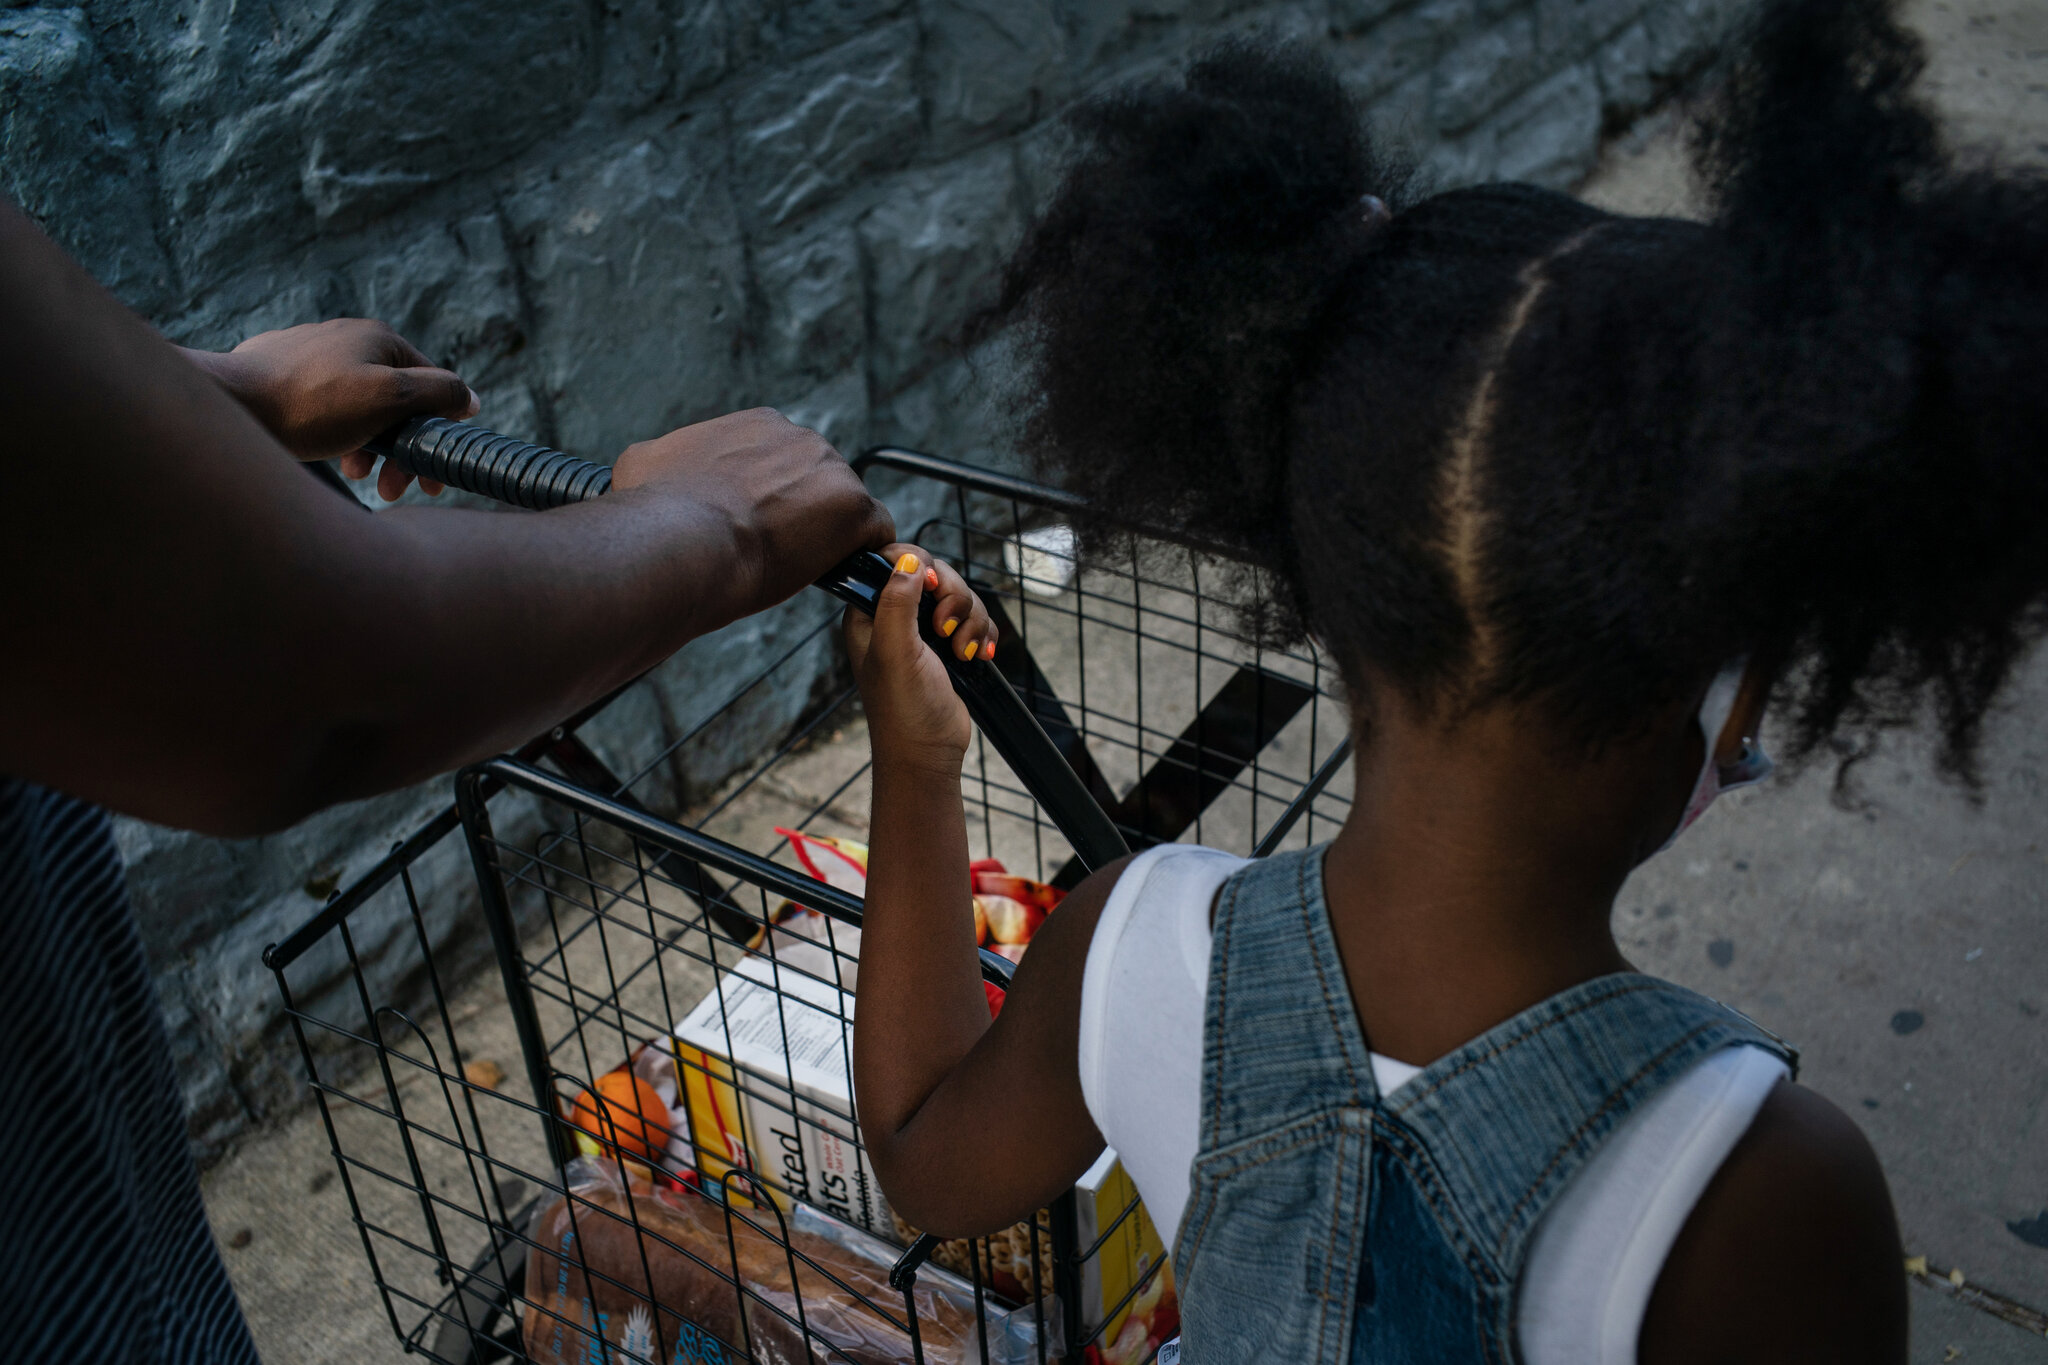 Non-profit_organizations_like_Masbia_in_Brooklyn_made_Leslie_and_her_daughter_Trinity_heading_back_so_happy_to_their_place_after_picking_up_free_food.jpg